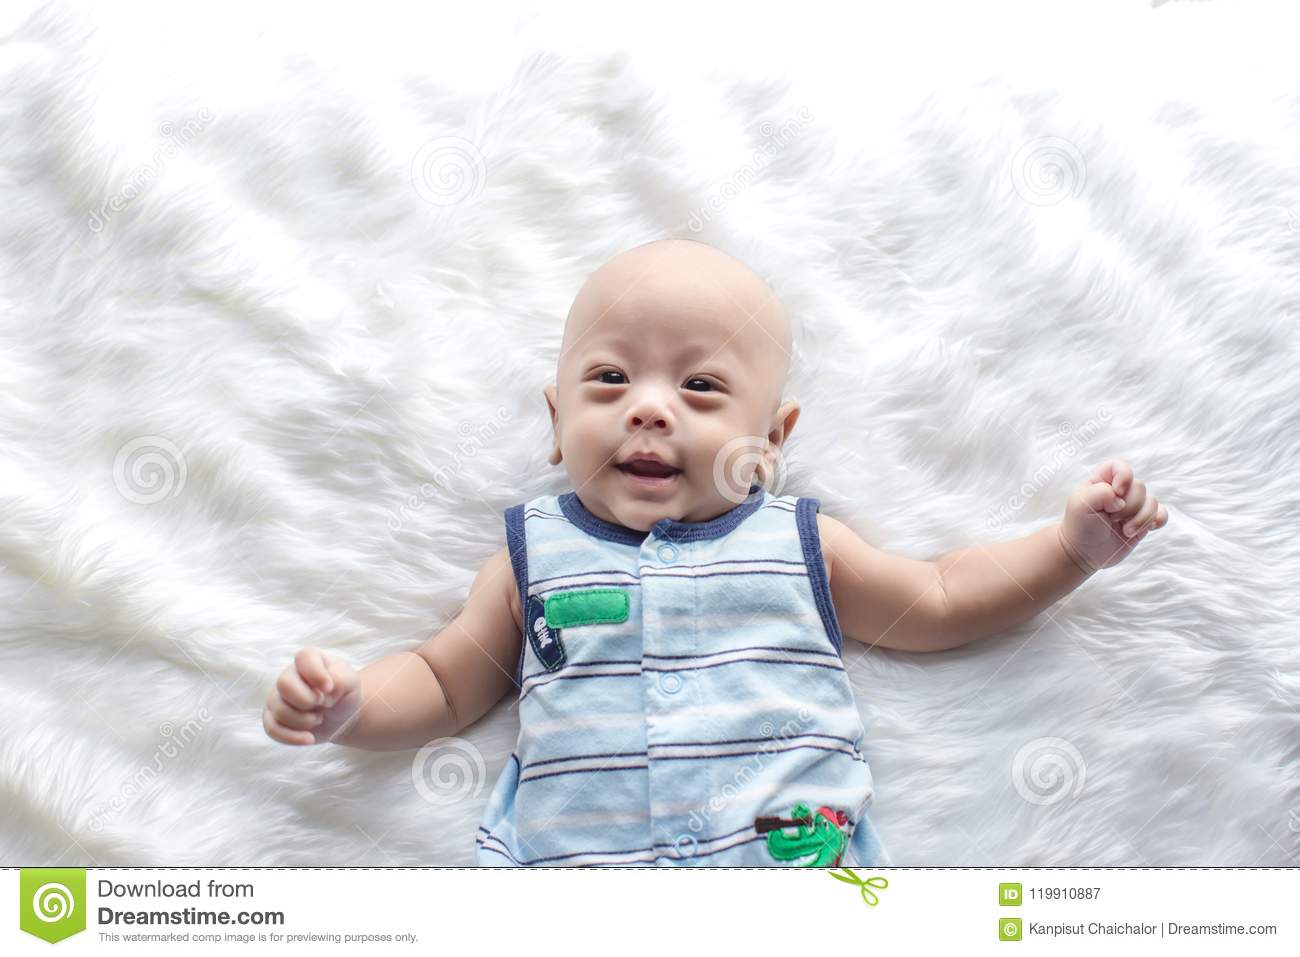 Cute baby boy is shooting in the studio fashion image of baby and family